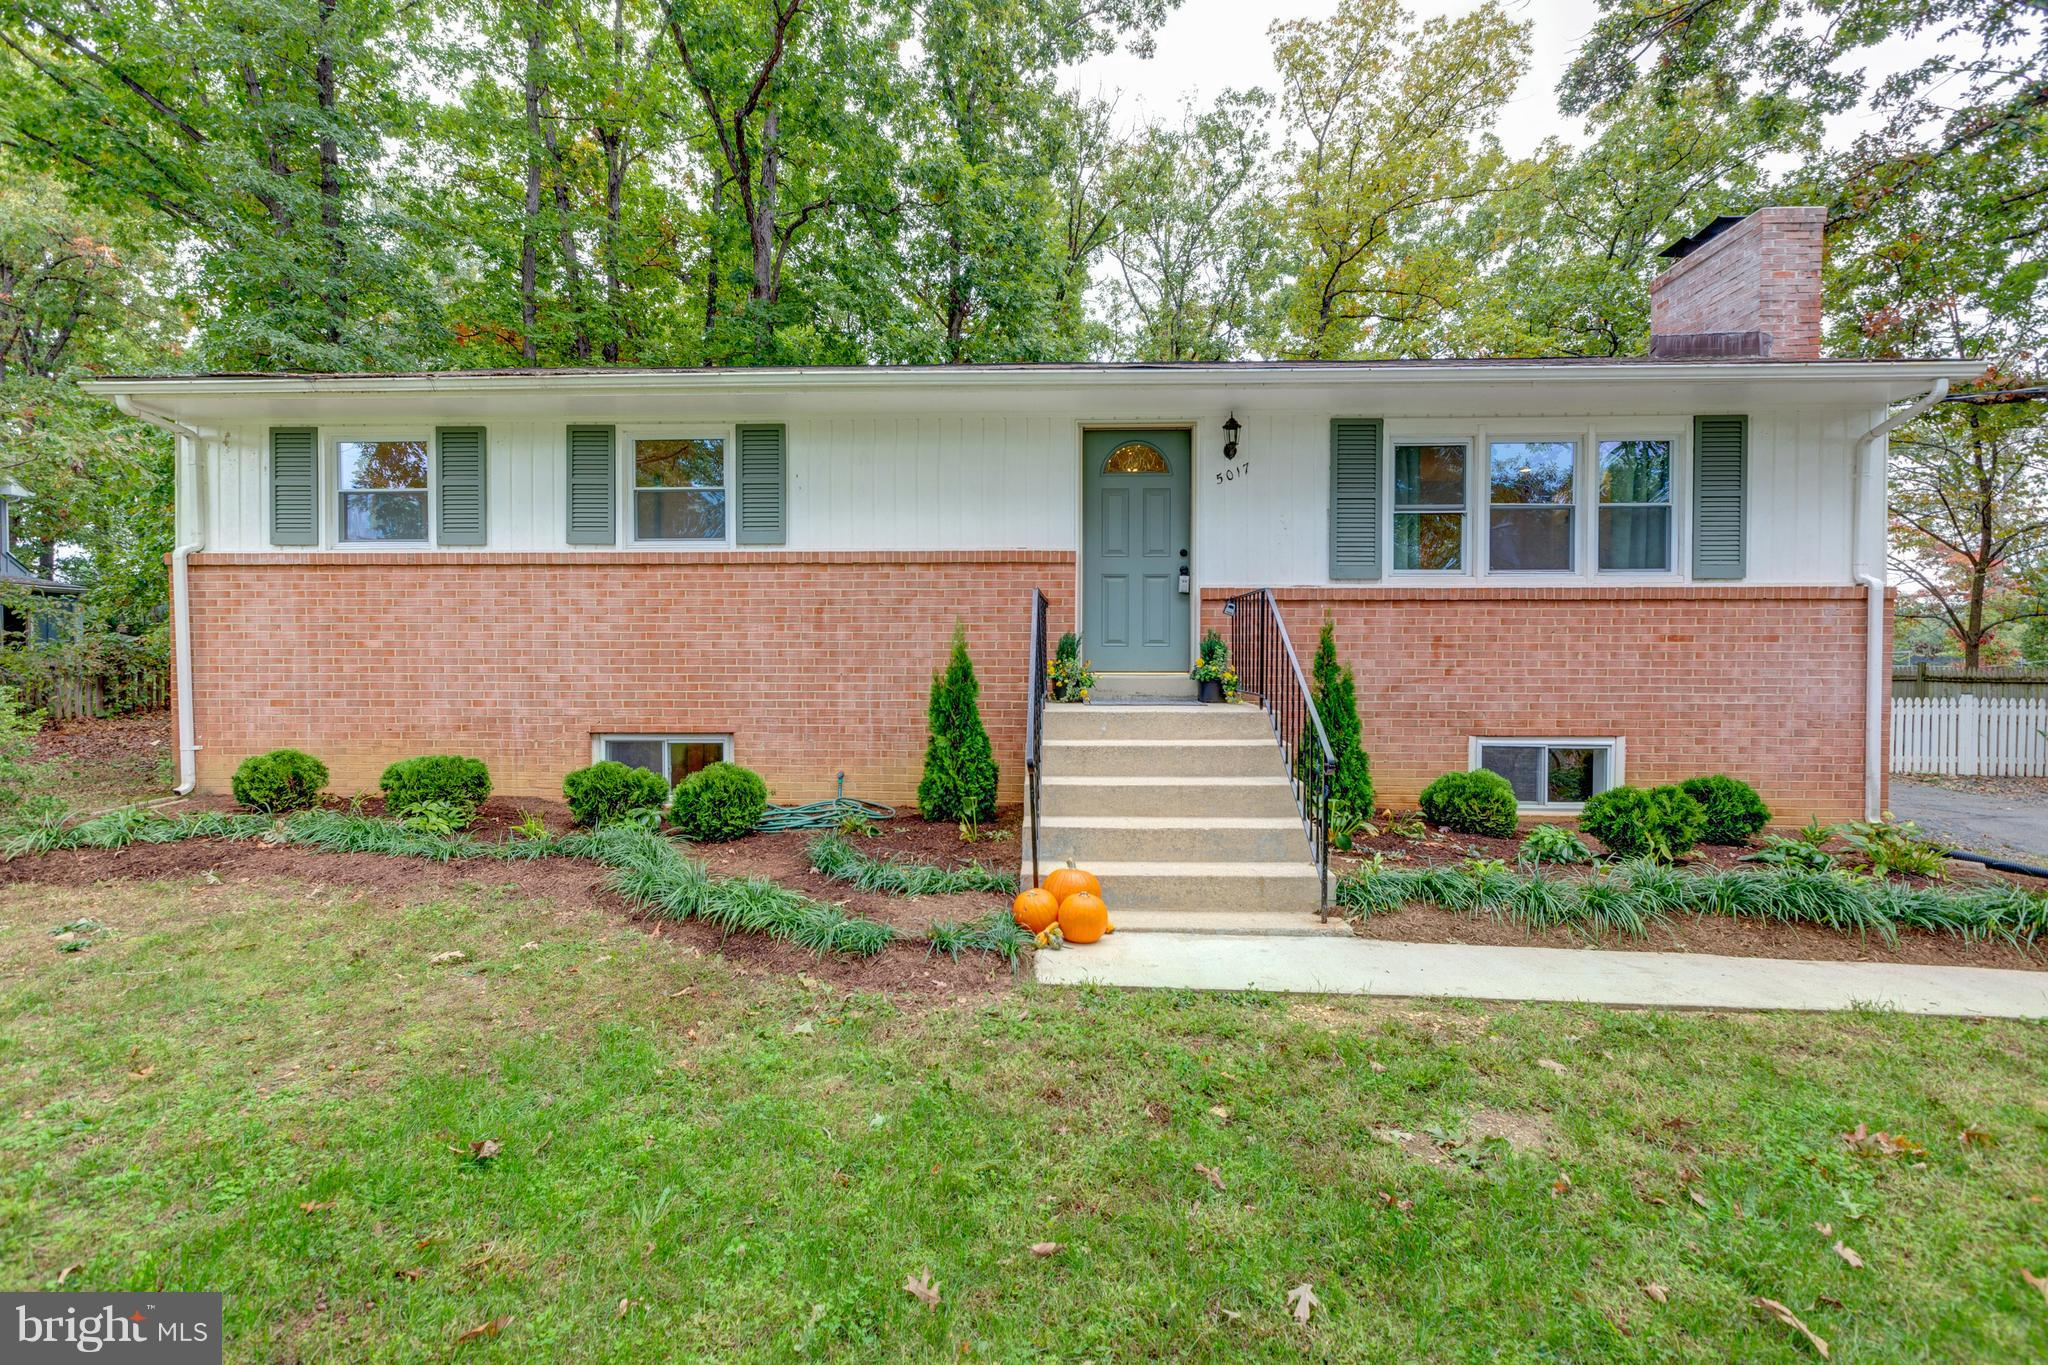 Live inside the beltway in this renovated 5 bedroom home on 1/2 acre fenced lot and no HOA. New Kitchen with SS appliances. Upgraded bathrooms. Large Master on the main floor with connected bath. Fireplace with custom built ins.  Wood floors on the main level. Finished basement with den, rec room and newly added laundry room. Wooded mature lot in quiet neighborhood. Close to all commuter routes to Amazon HQ and DC.